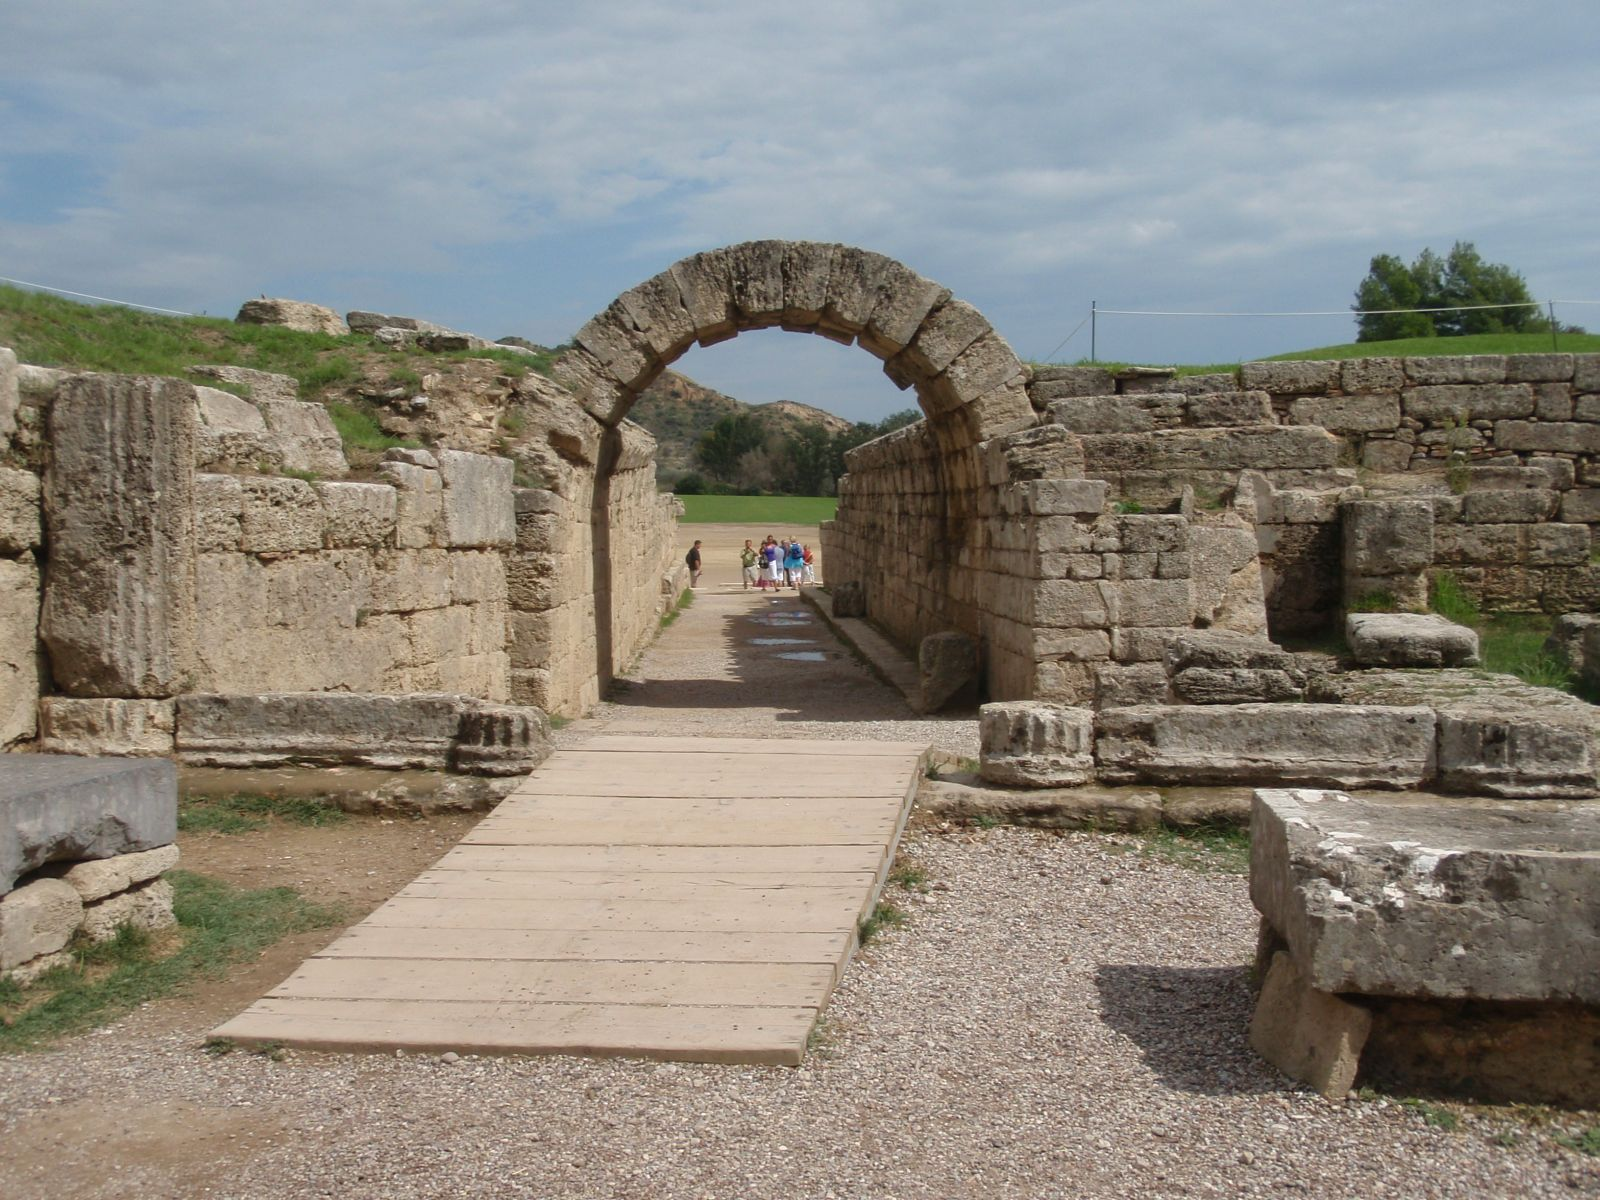 Entrance To Old Ancient Olympic Stadium